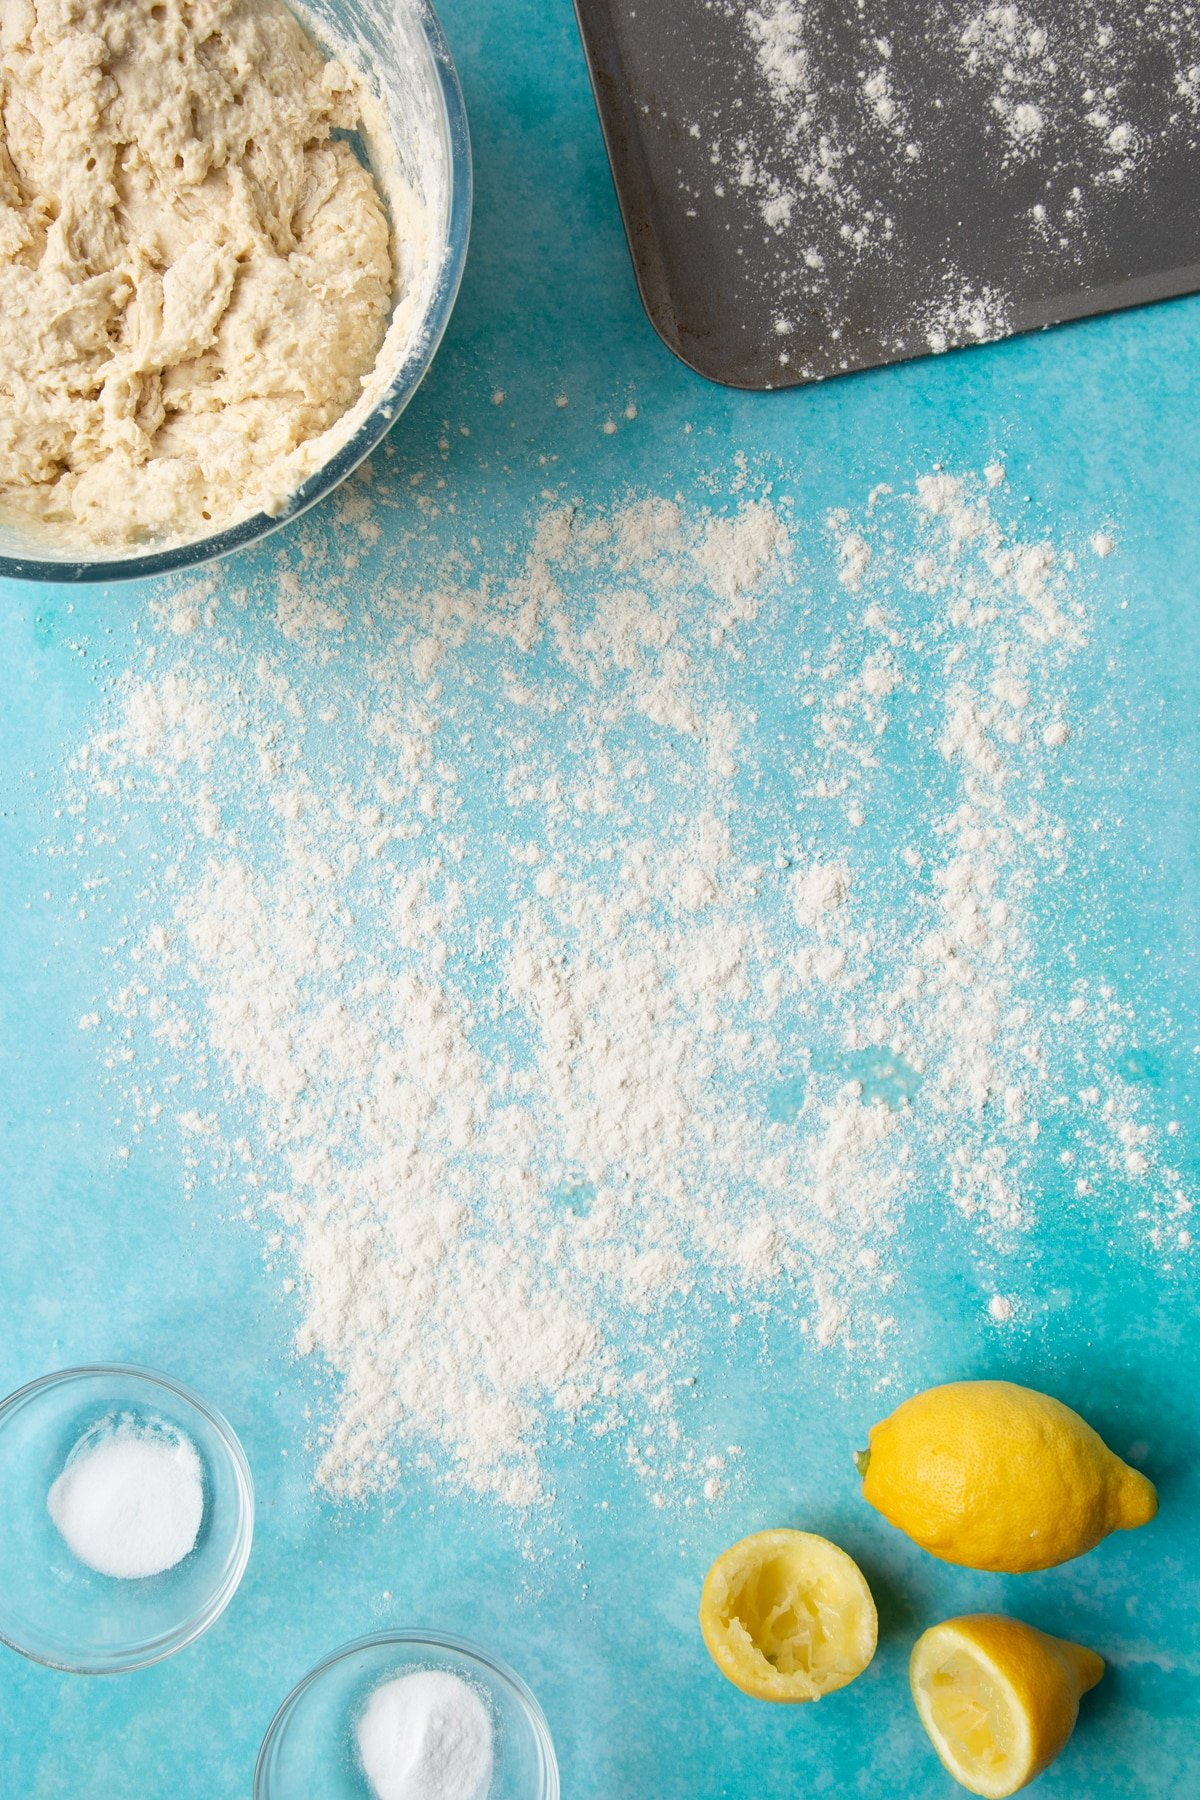 A floured surface surrounded by ingredients to make vegan soda bread.